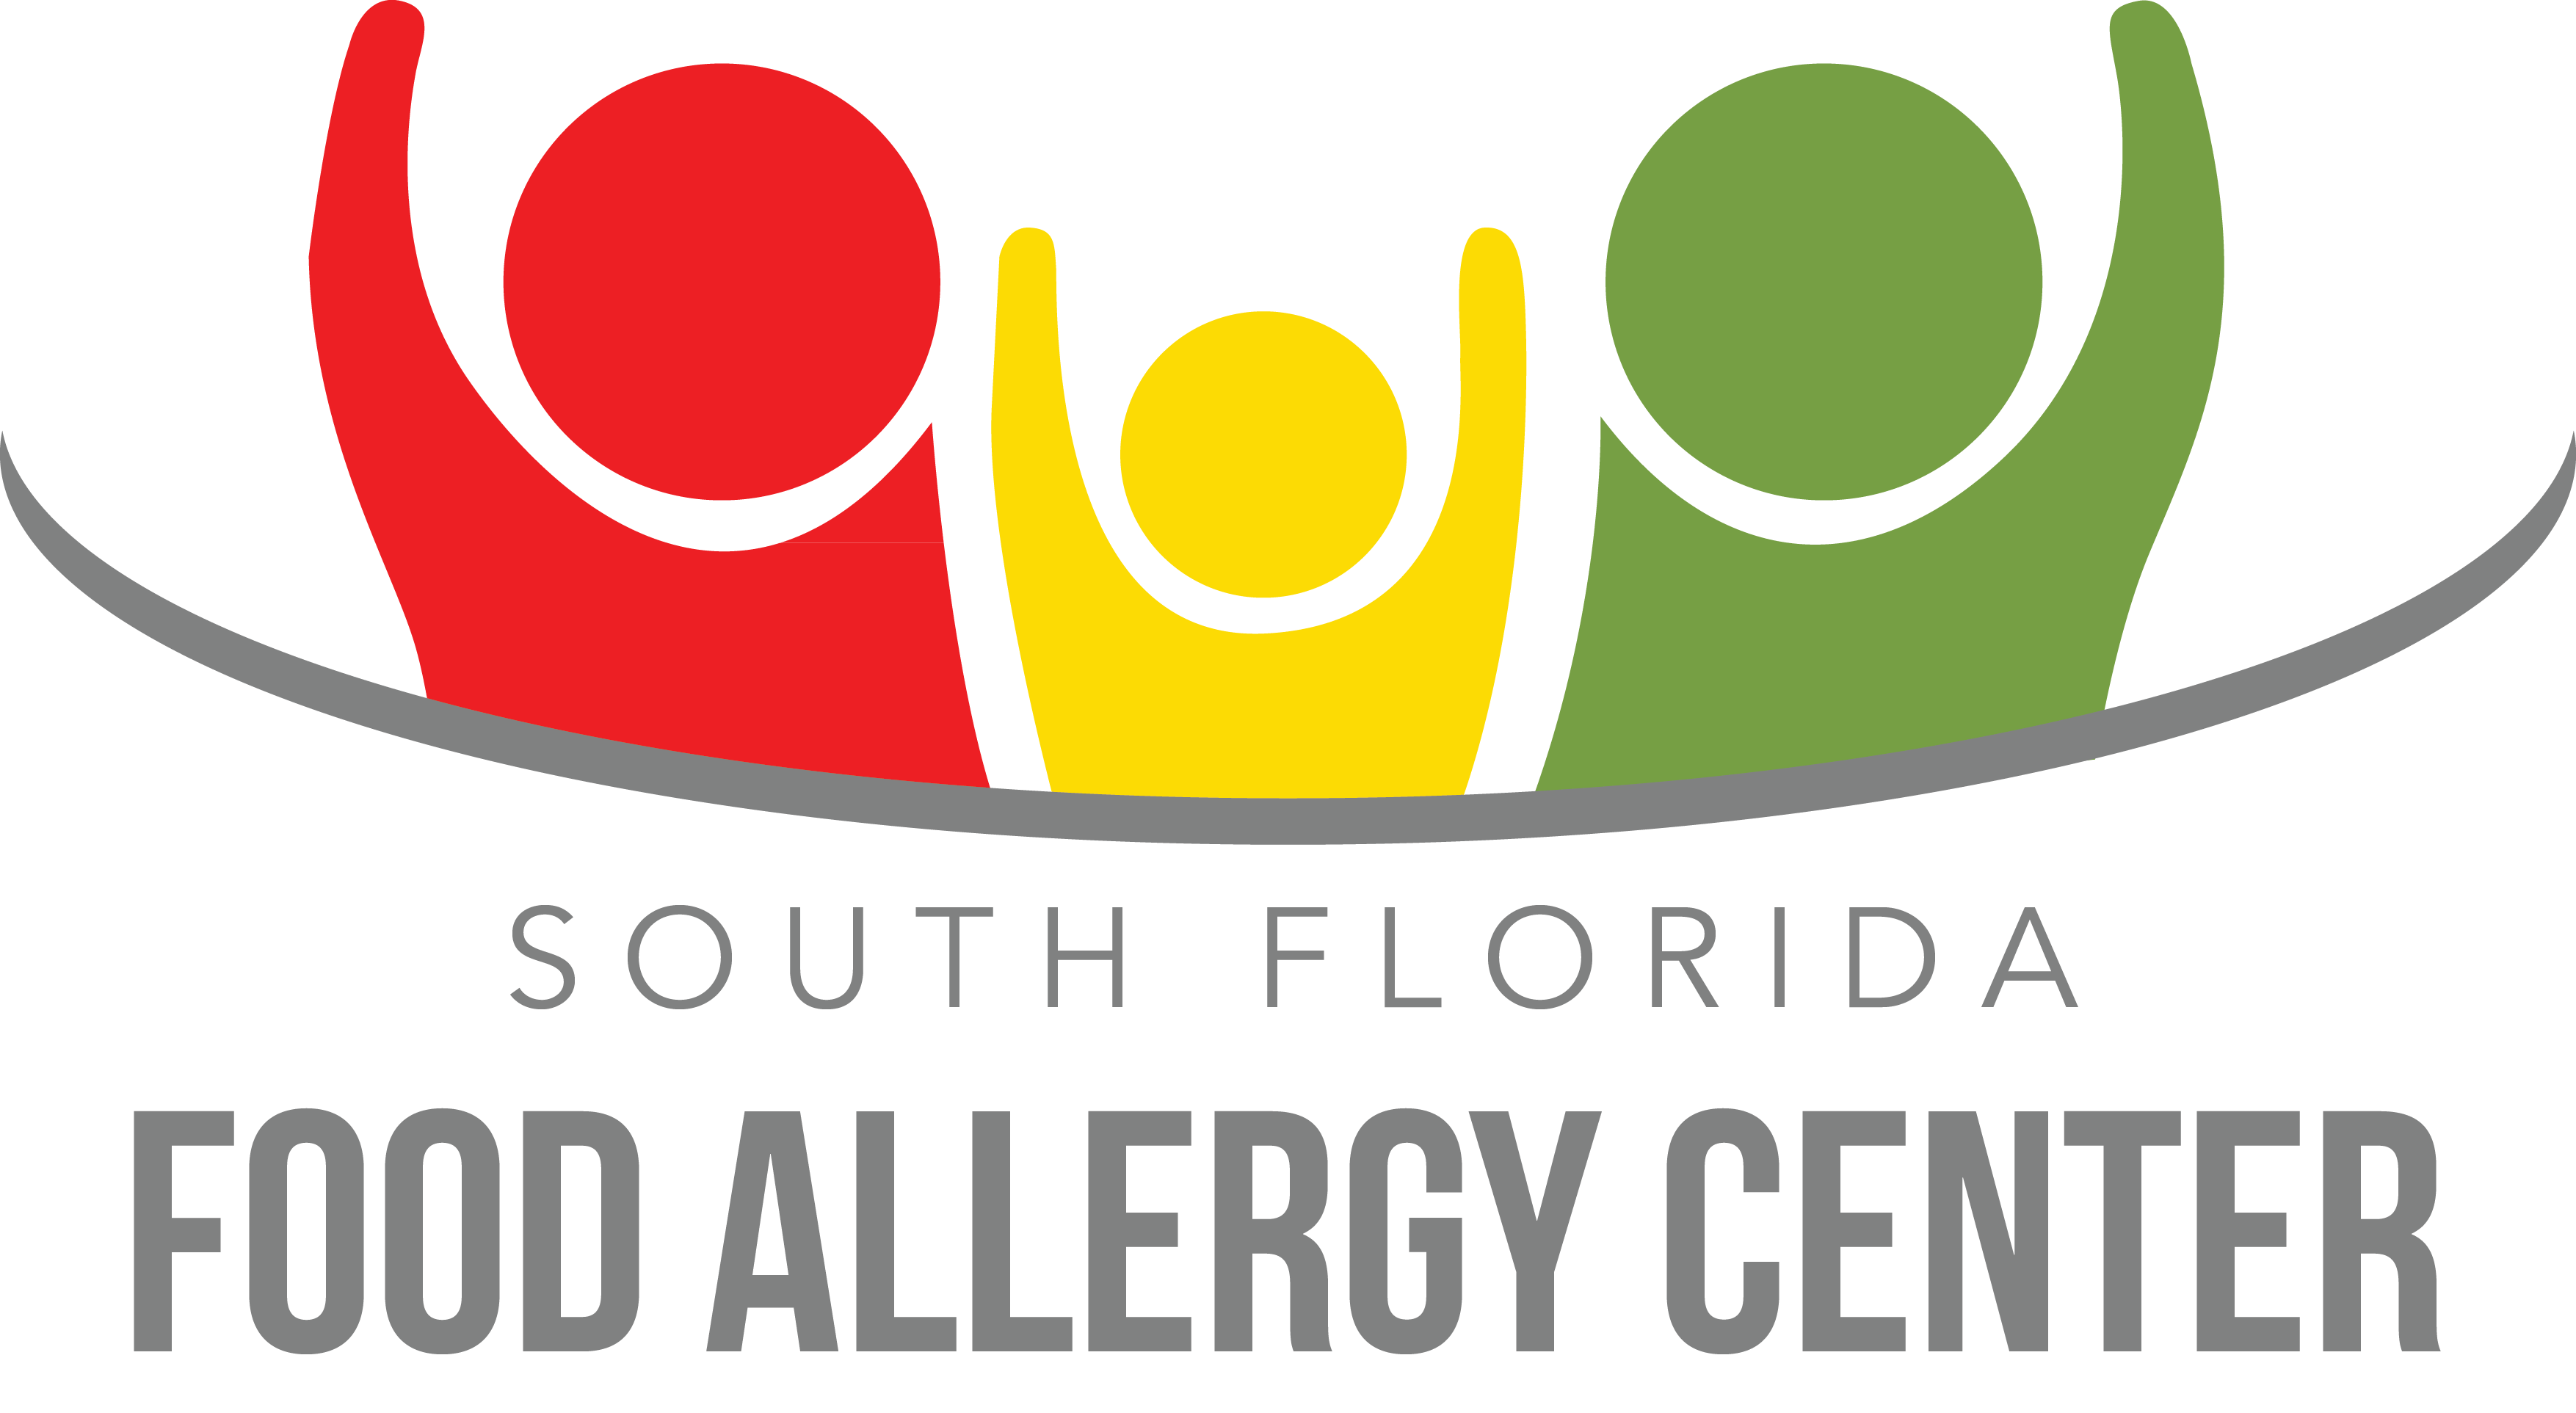 South Florida Food Allergy Center